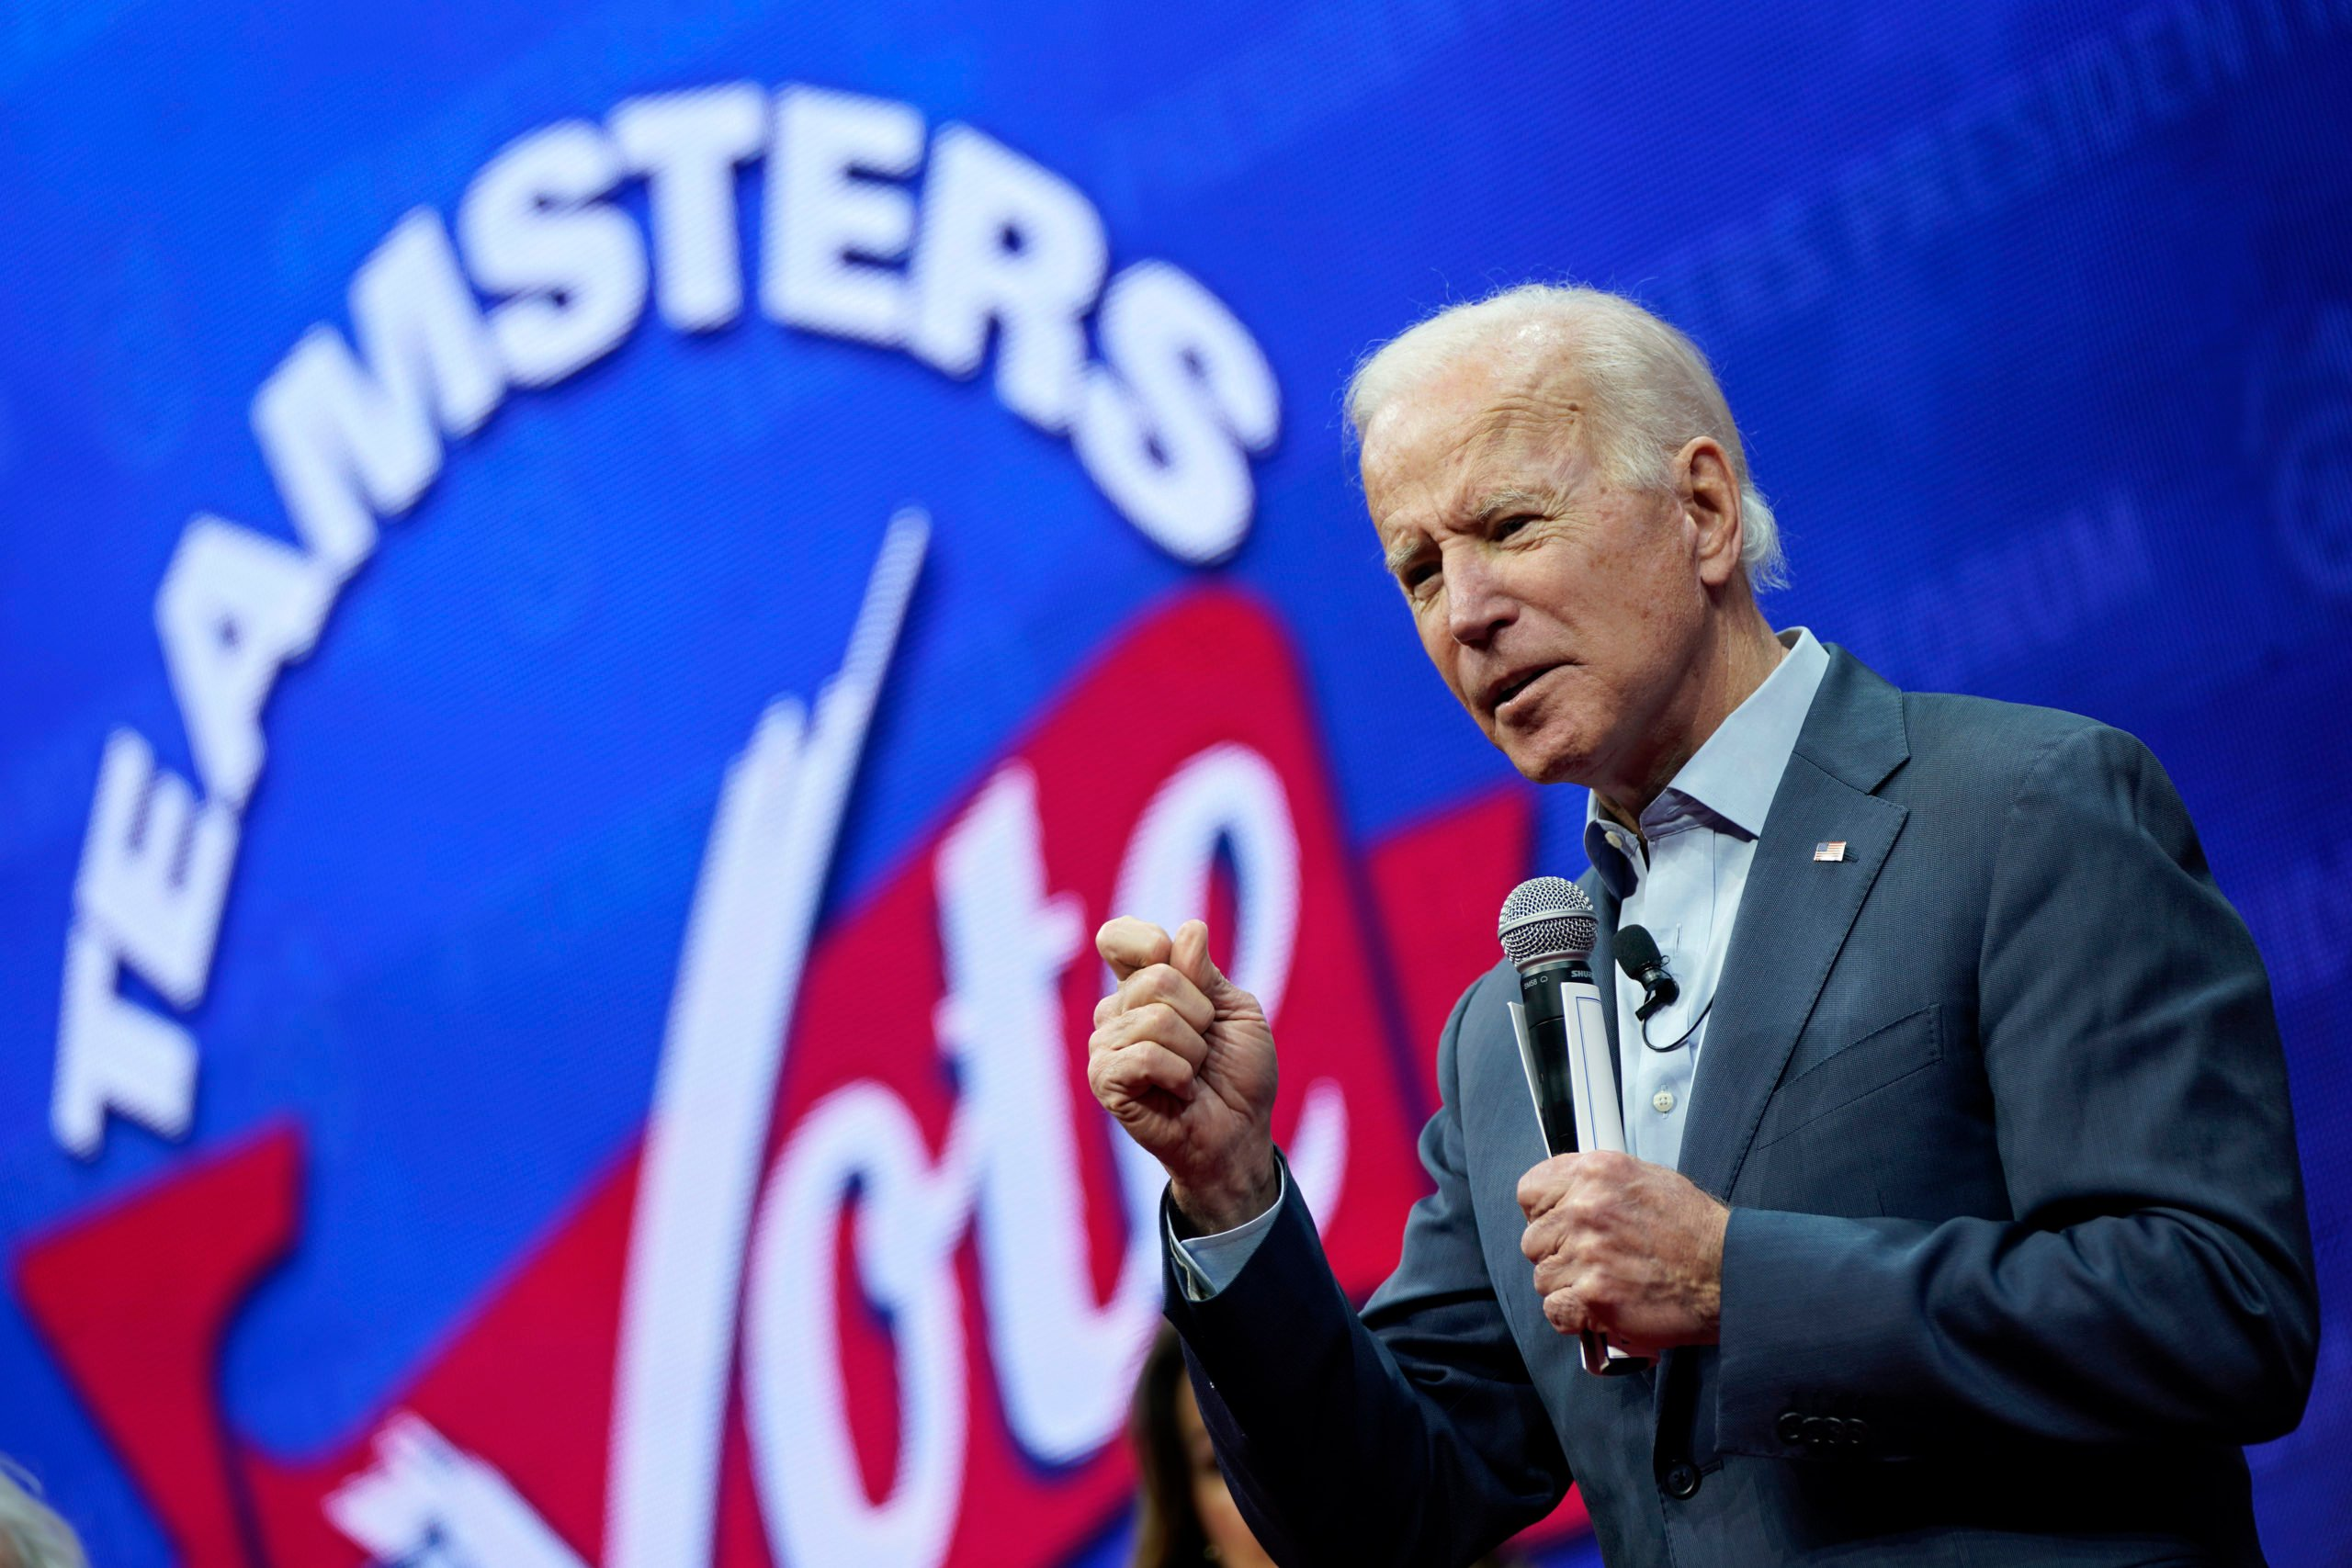 President Joe Biden speaks at the Teamsters Vote 2020 Presidential Candidate Forum on Dec. 7, 2019 in Cedar Rapids, Iowa. (Win McNamee/Getty Images)